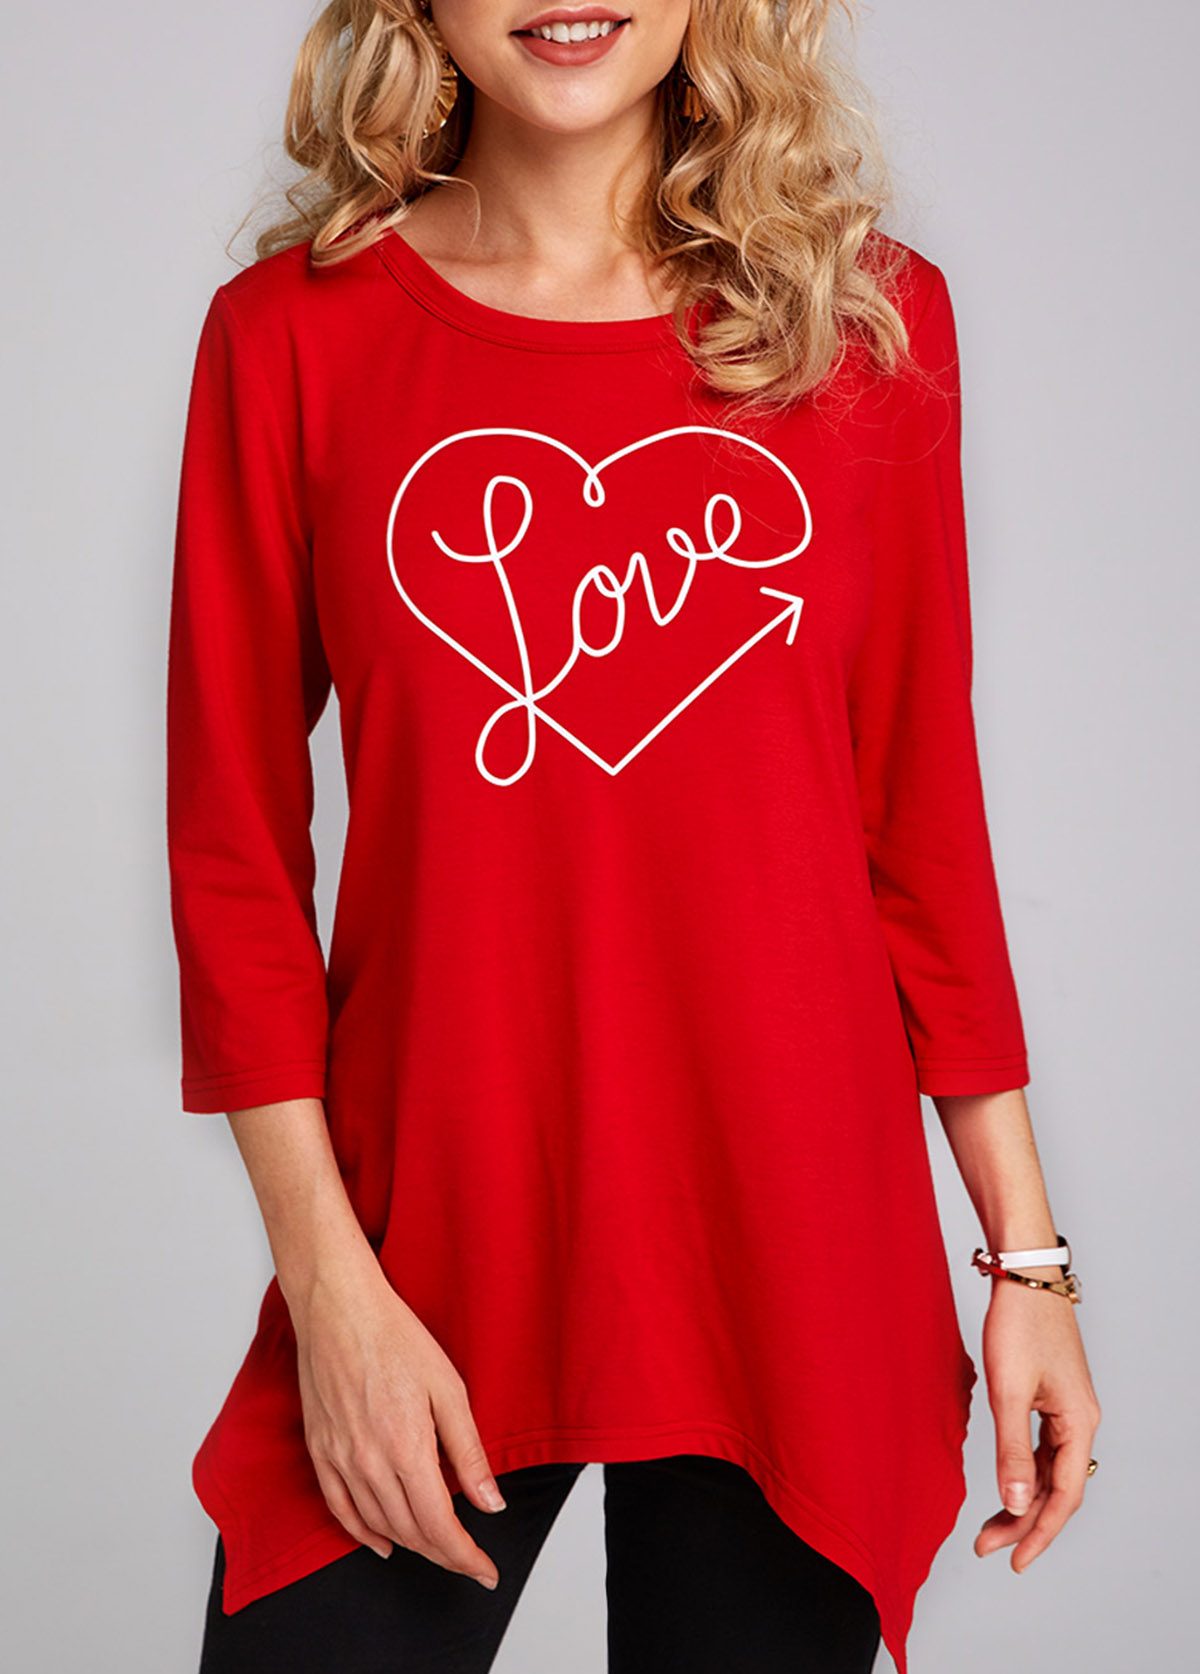 Heart and Letter Print Asymmetric Hem 3/4 Sleeve T Shirt